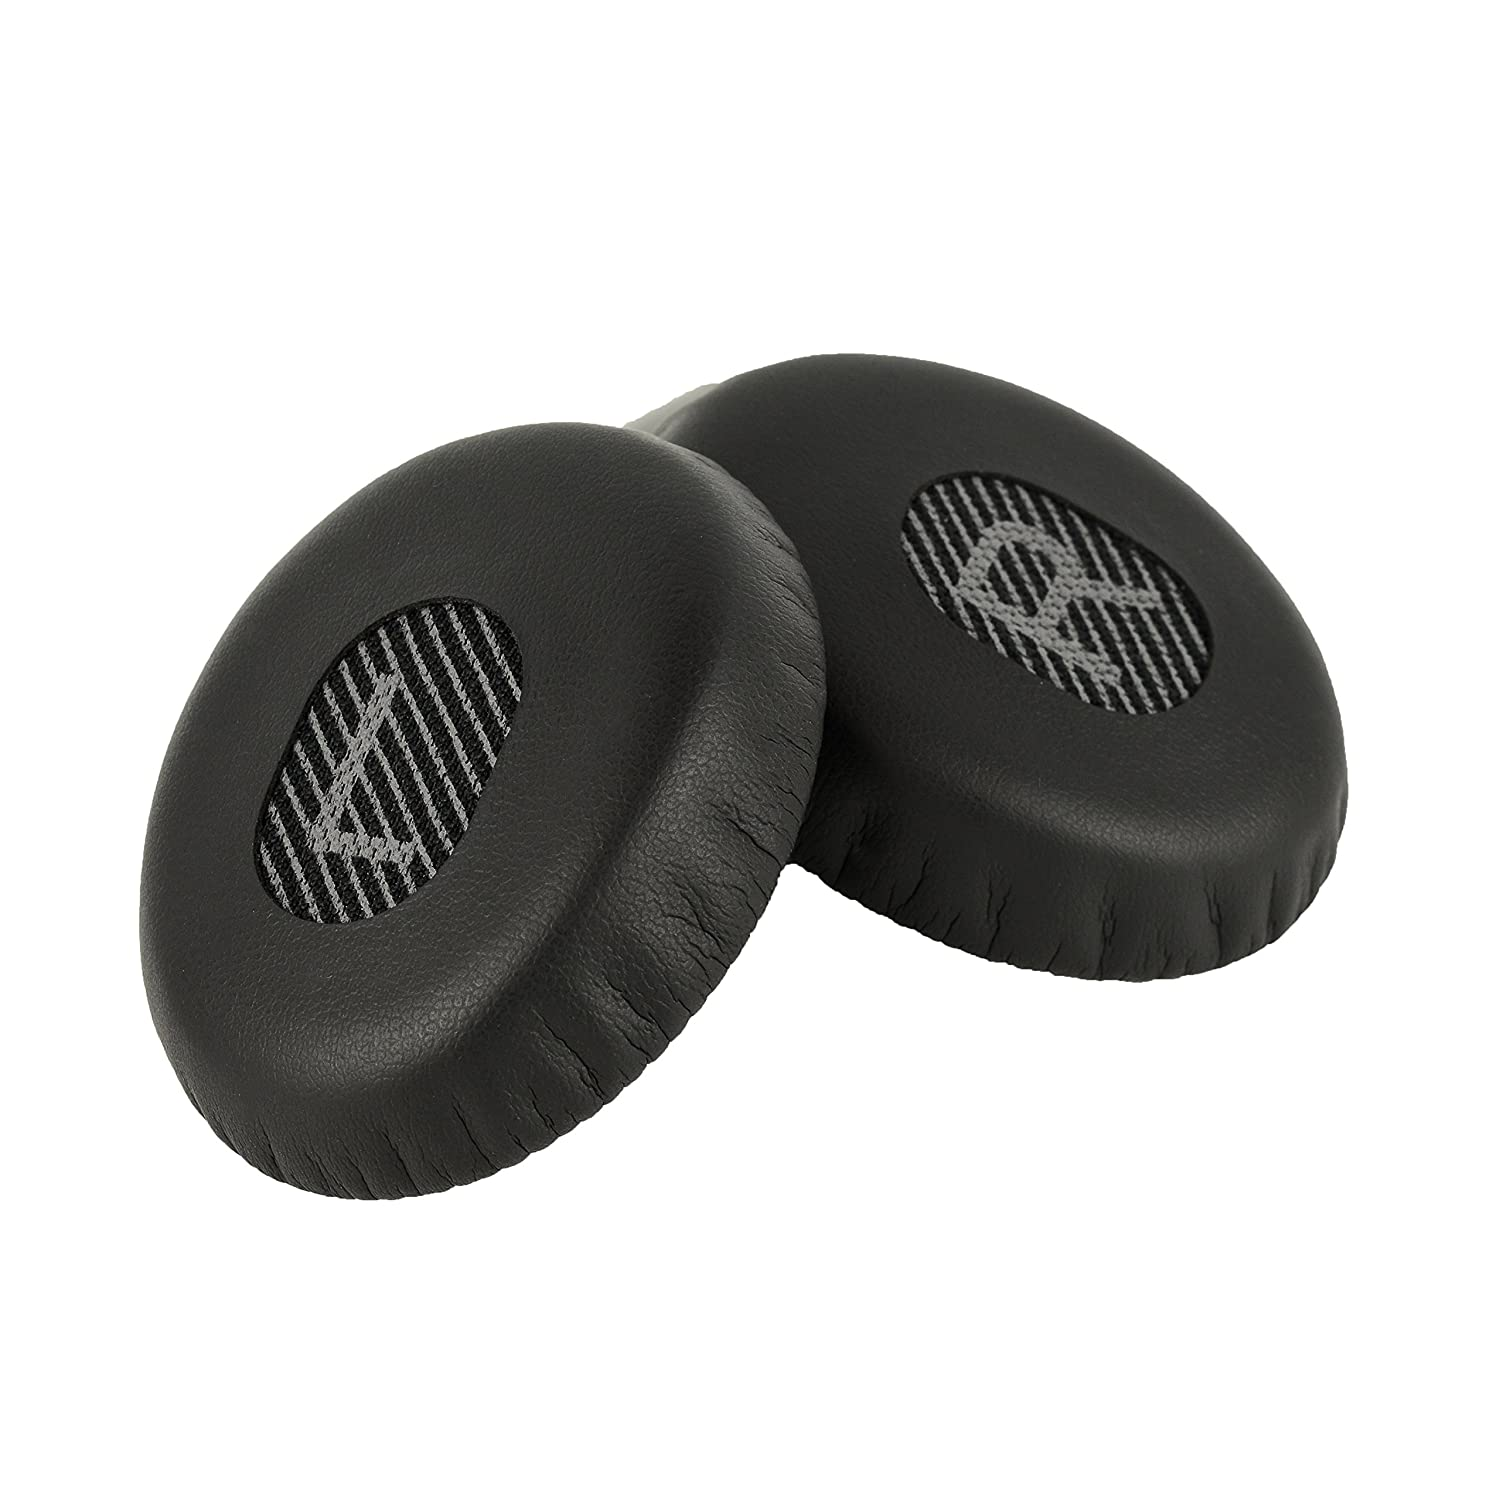 Ear Cushion Pads for Bose Around Ear® AE and Tri-port 1 - TP1 Headphones (Not compatible with Bose Around-Ear 2/w (AE2/AE2w) Accessory House AE/TP1/TP1A Ear Pads